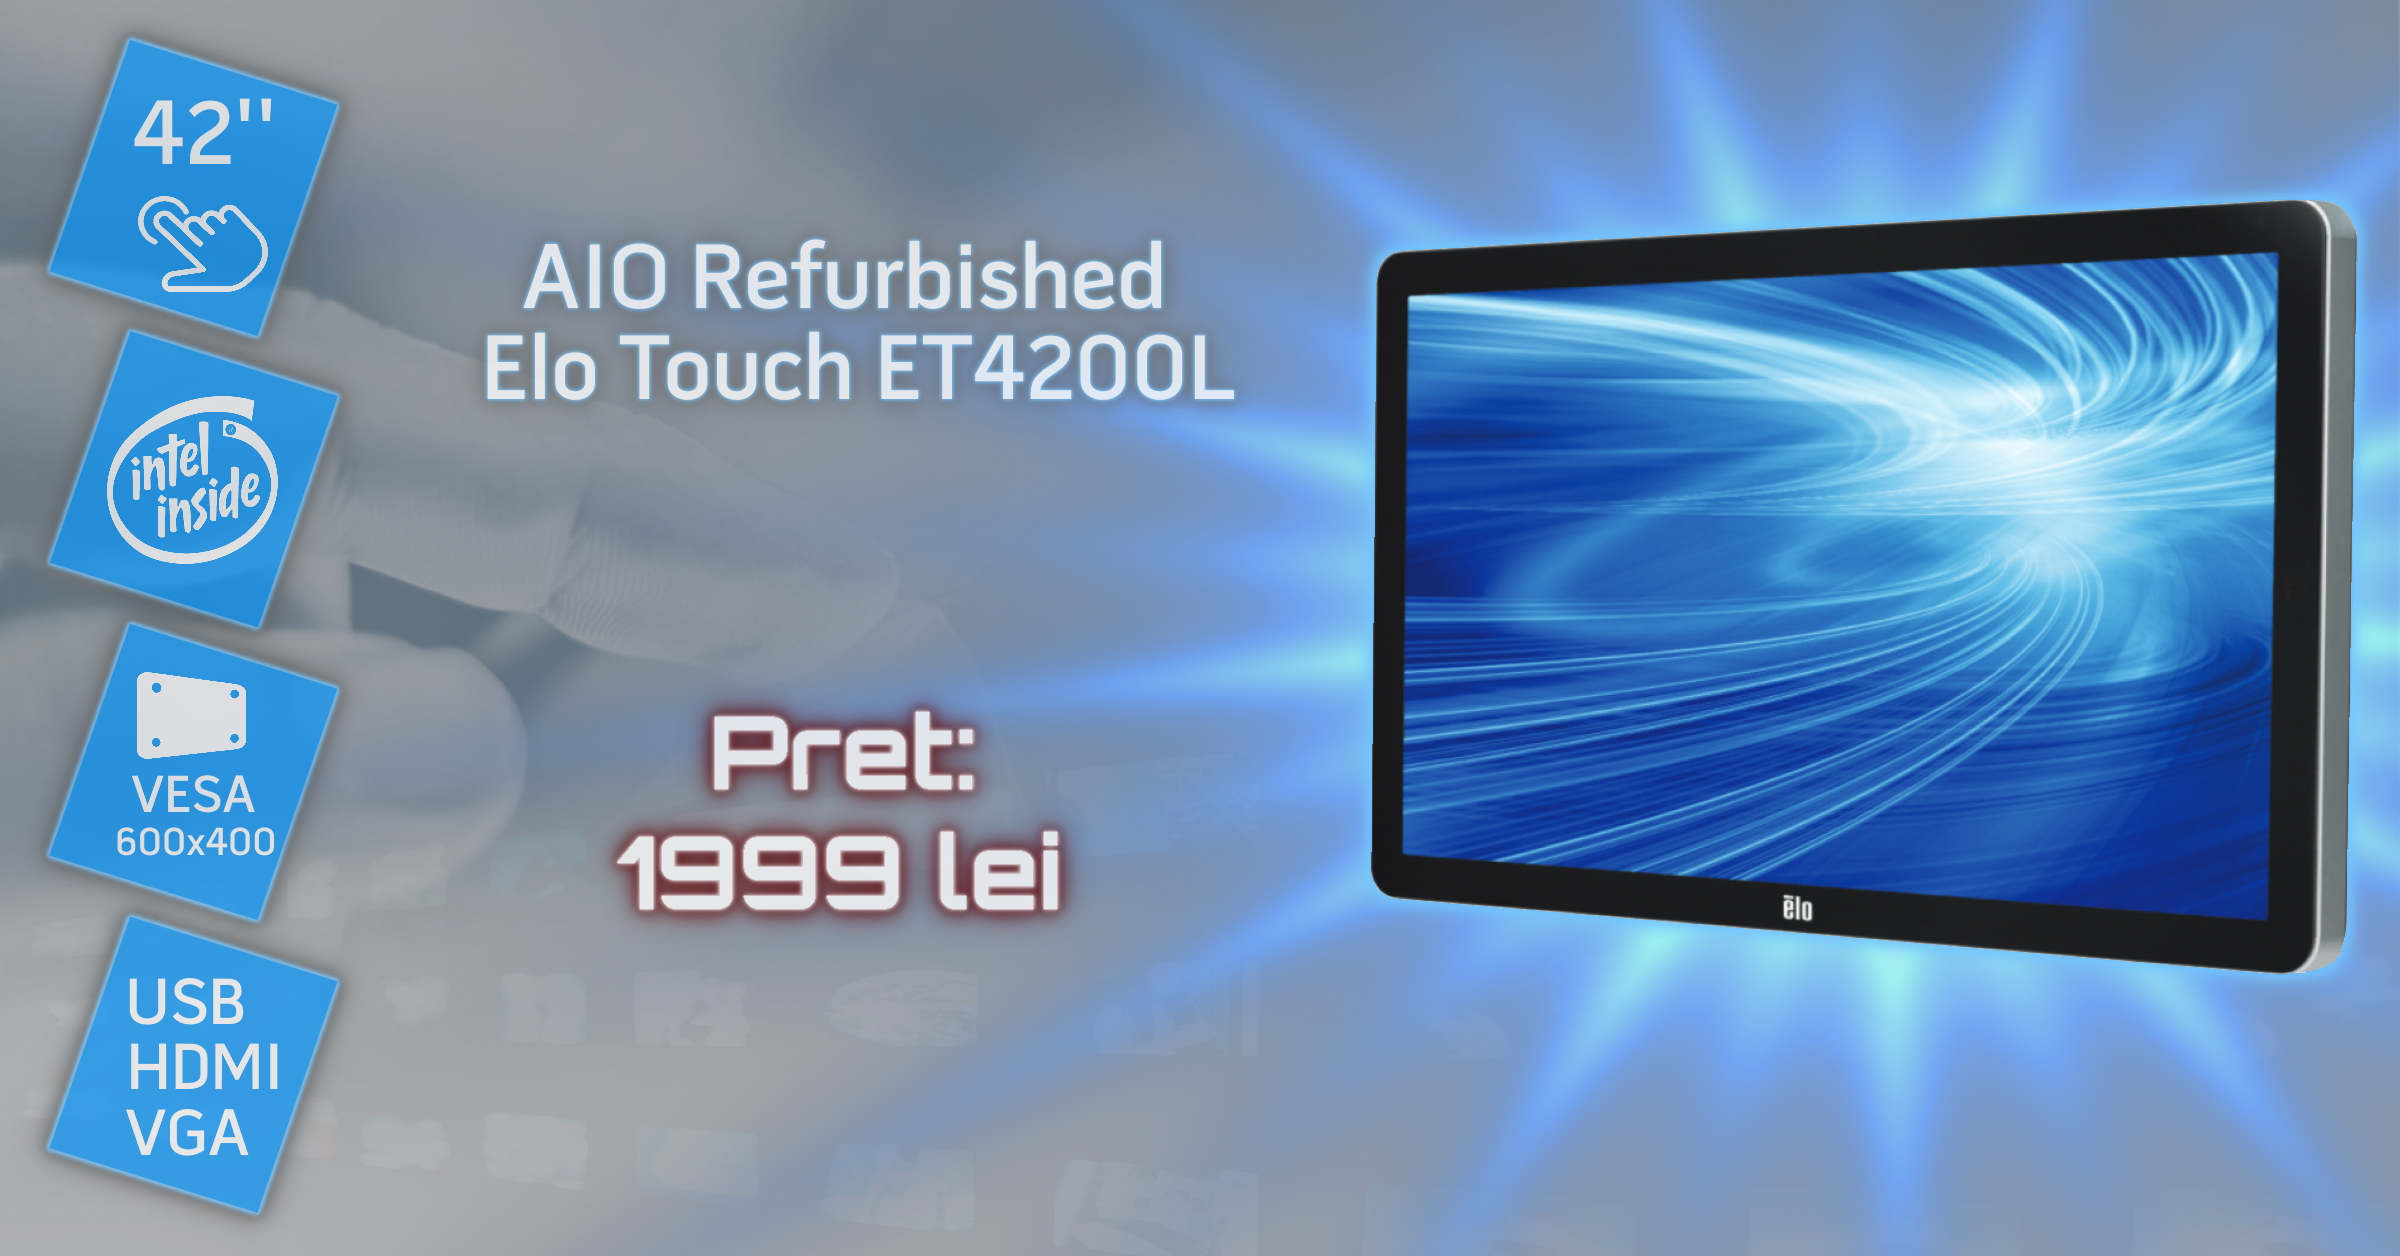 Sistem All-in-One Refurbished ELO Touch ET4200L